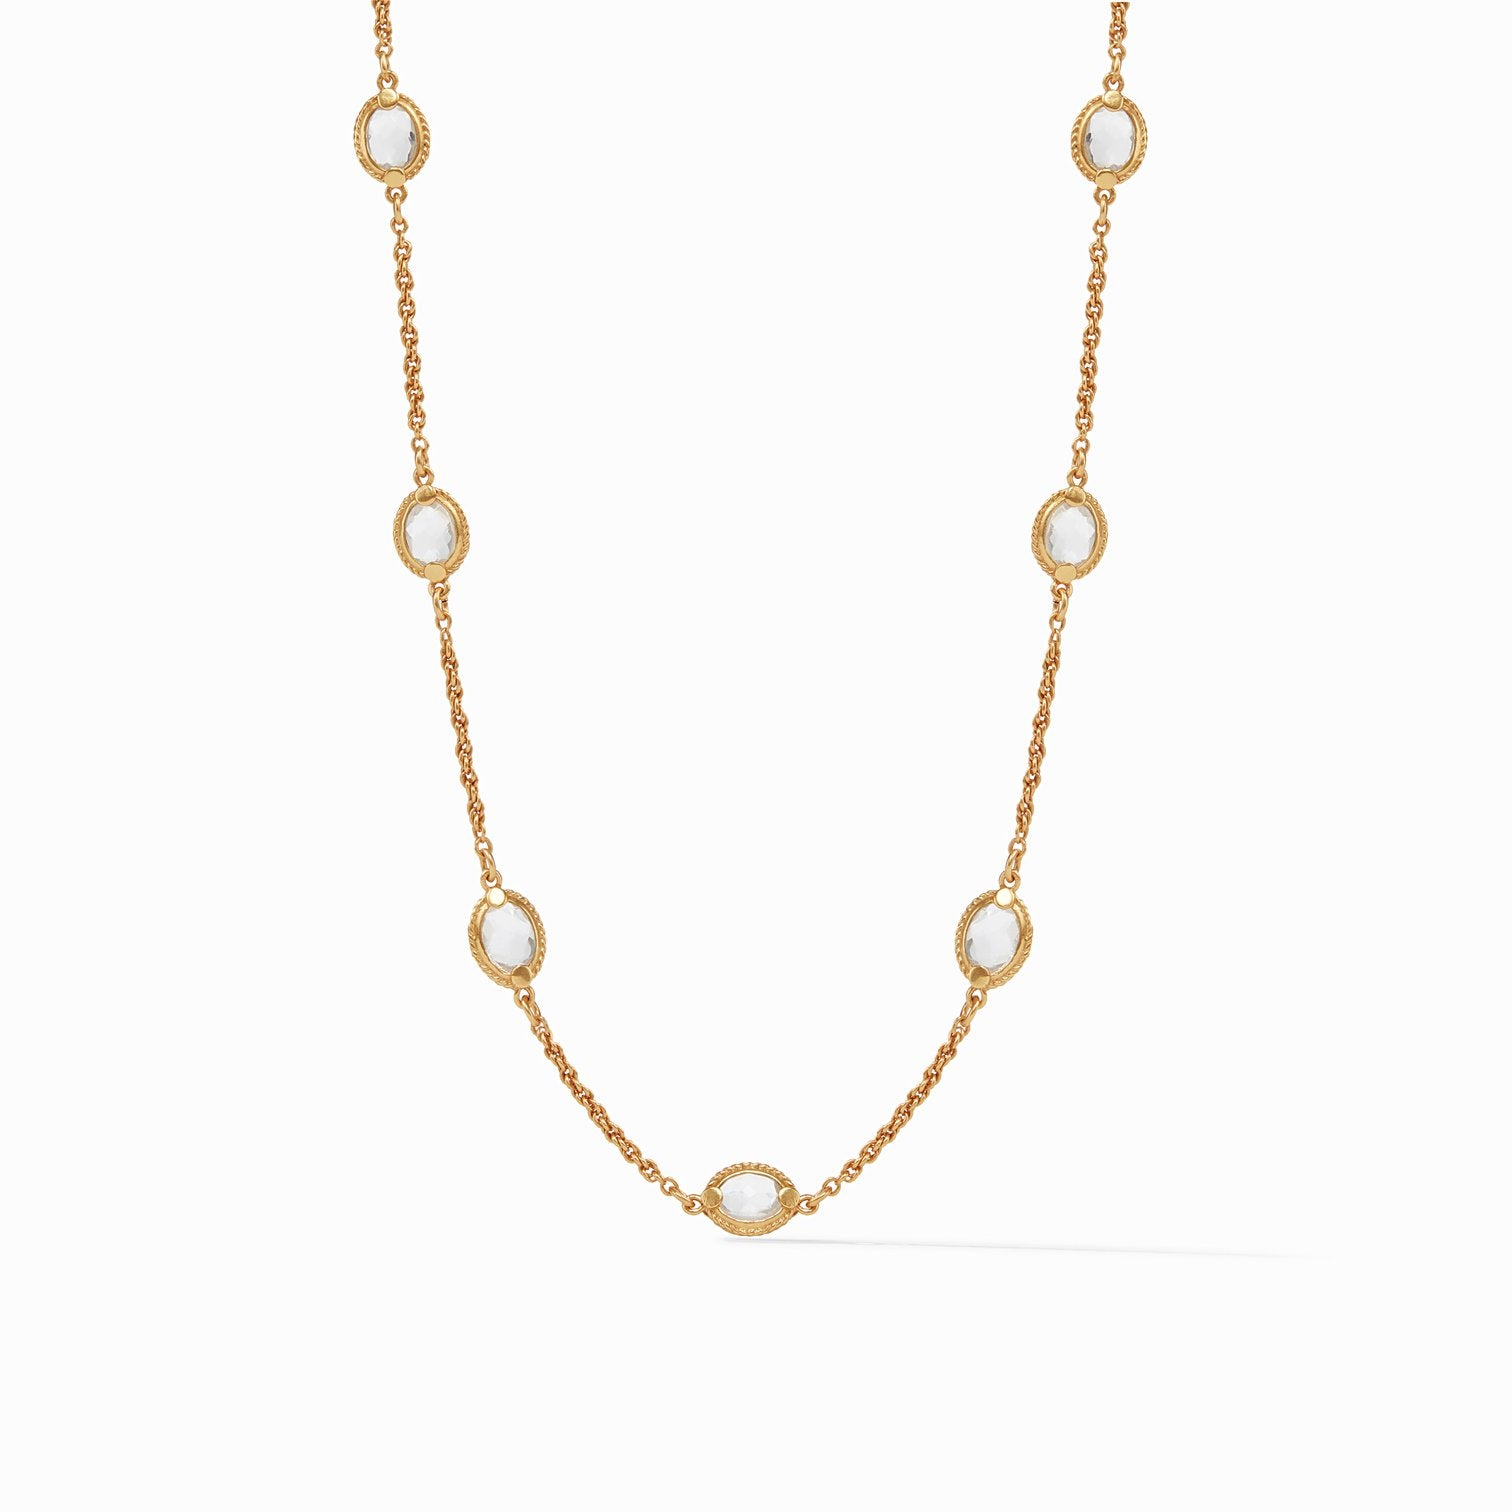 JULIE VOS - Calypso Demi Delicate Necklace